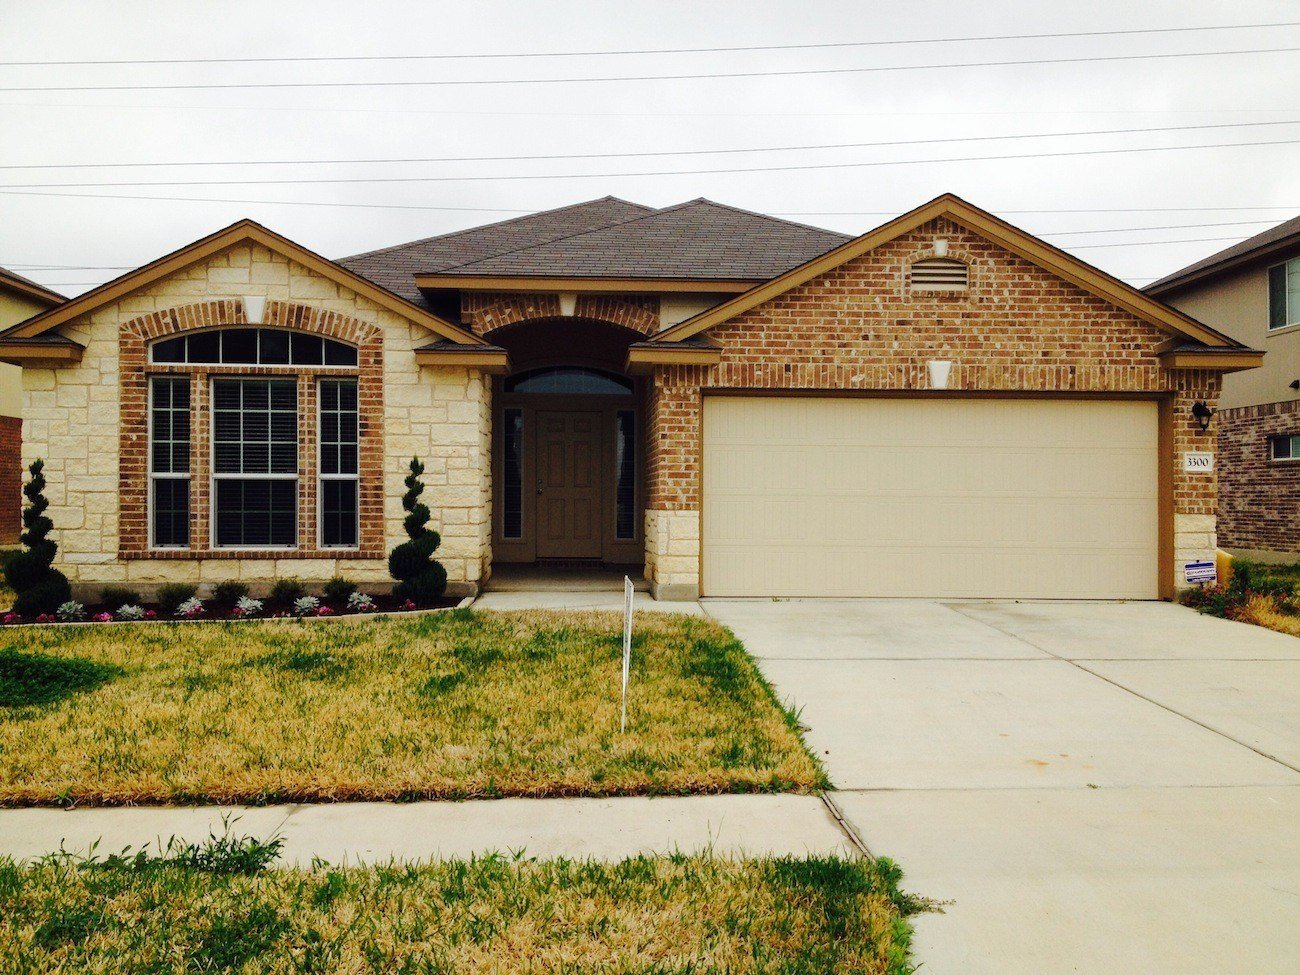 Best 3300 Cricklewood Drive Killeen Tx 76542 4 Bedroom Apartment For Rent For 1 250 Month Zumper With Pictures